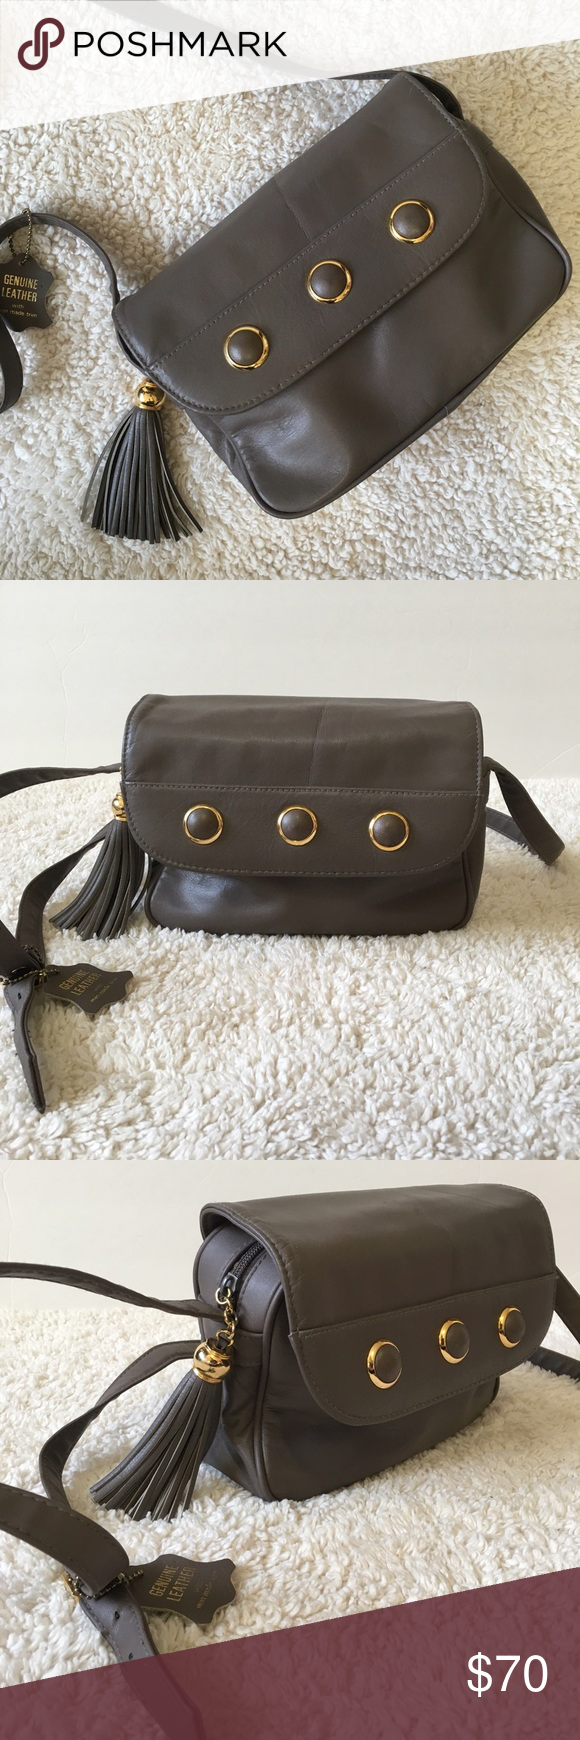 Leather Crossbody Genuine Leather Grey Crossbody With Gold Accents Great Condition! Jaclyn Smith Bags Crossbody Bags